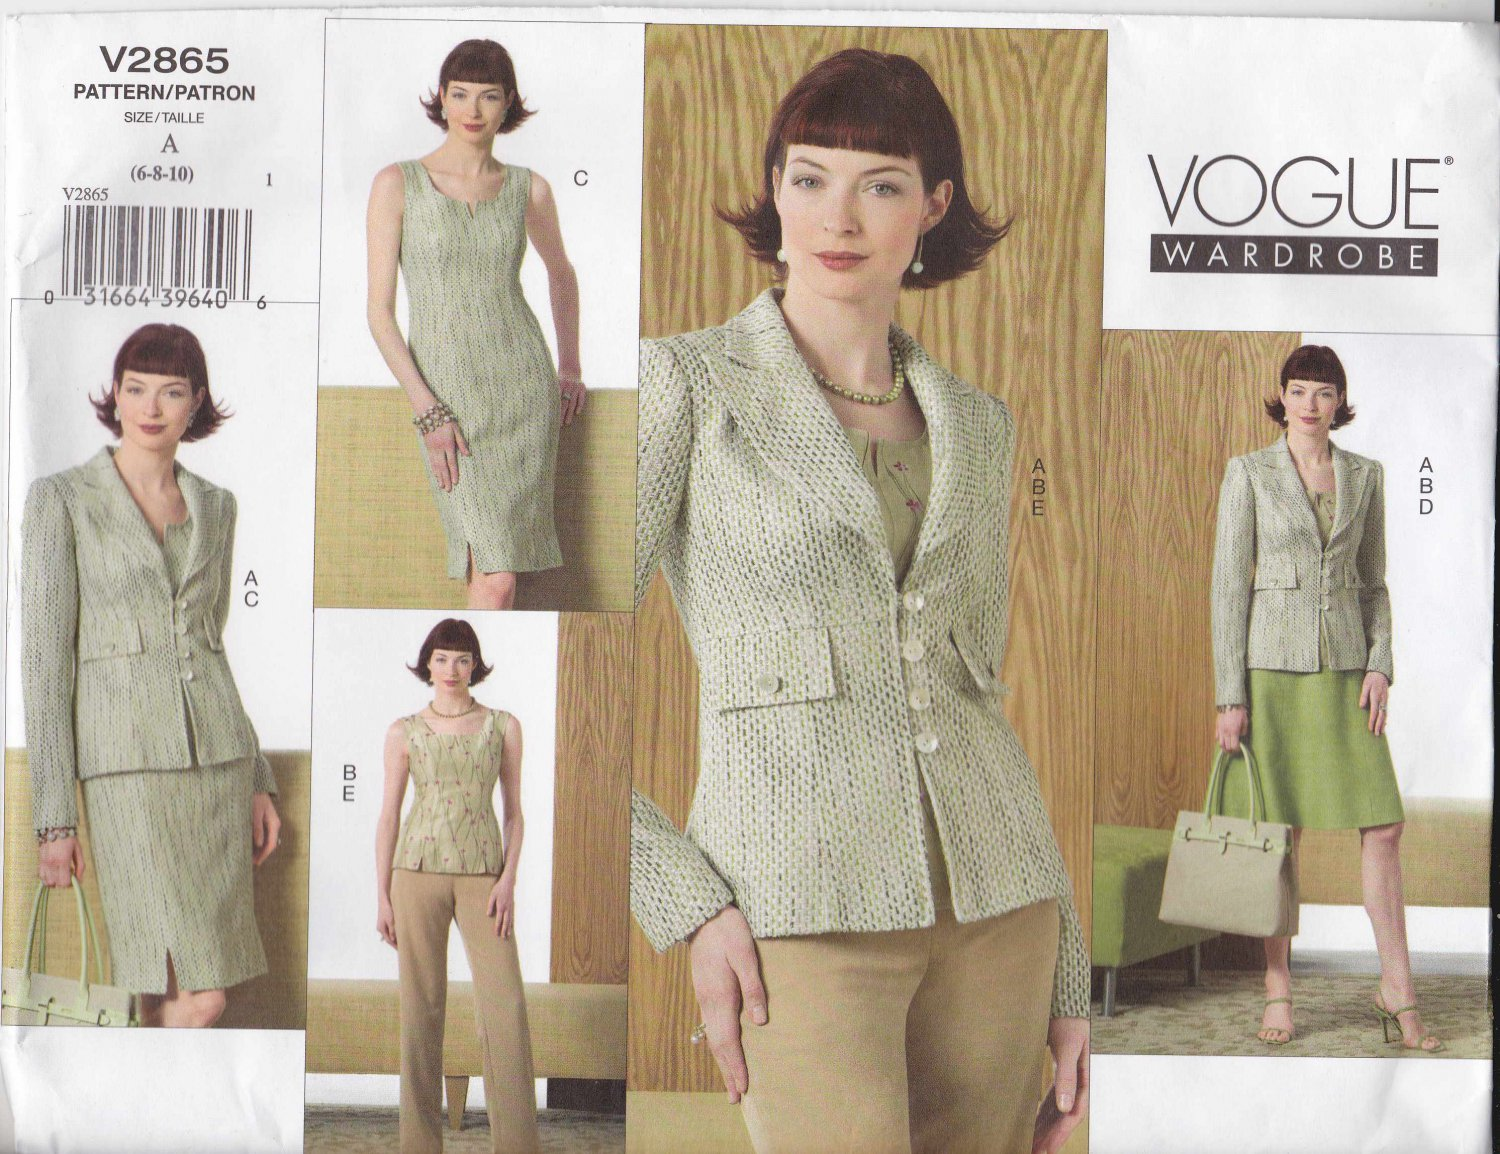 Vogue Sewing Pattern 2865 Misses Size 18-20-22 Wardrobe Top Pants Jacket Skirt Dress